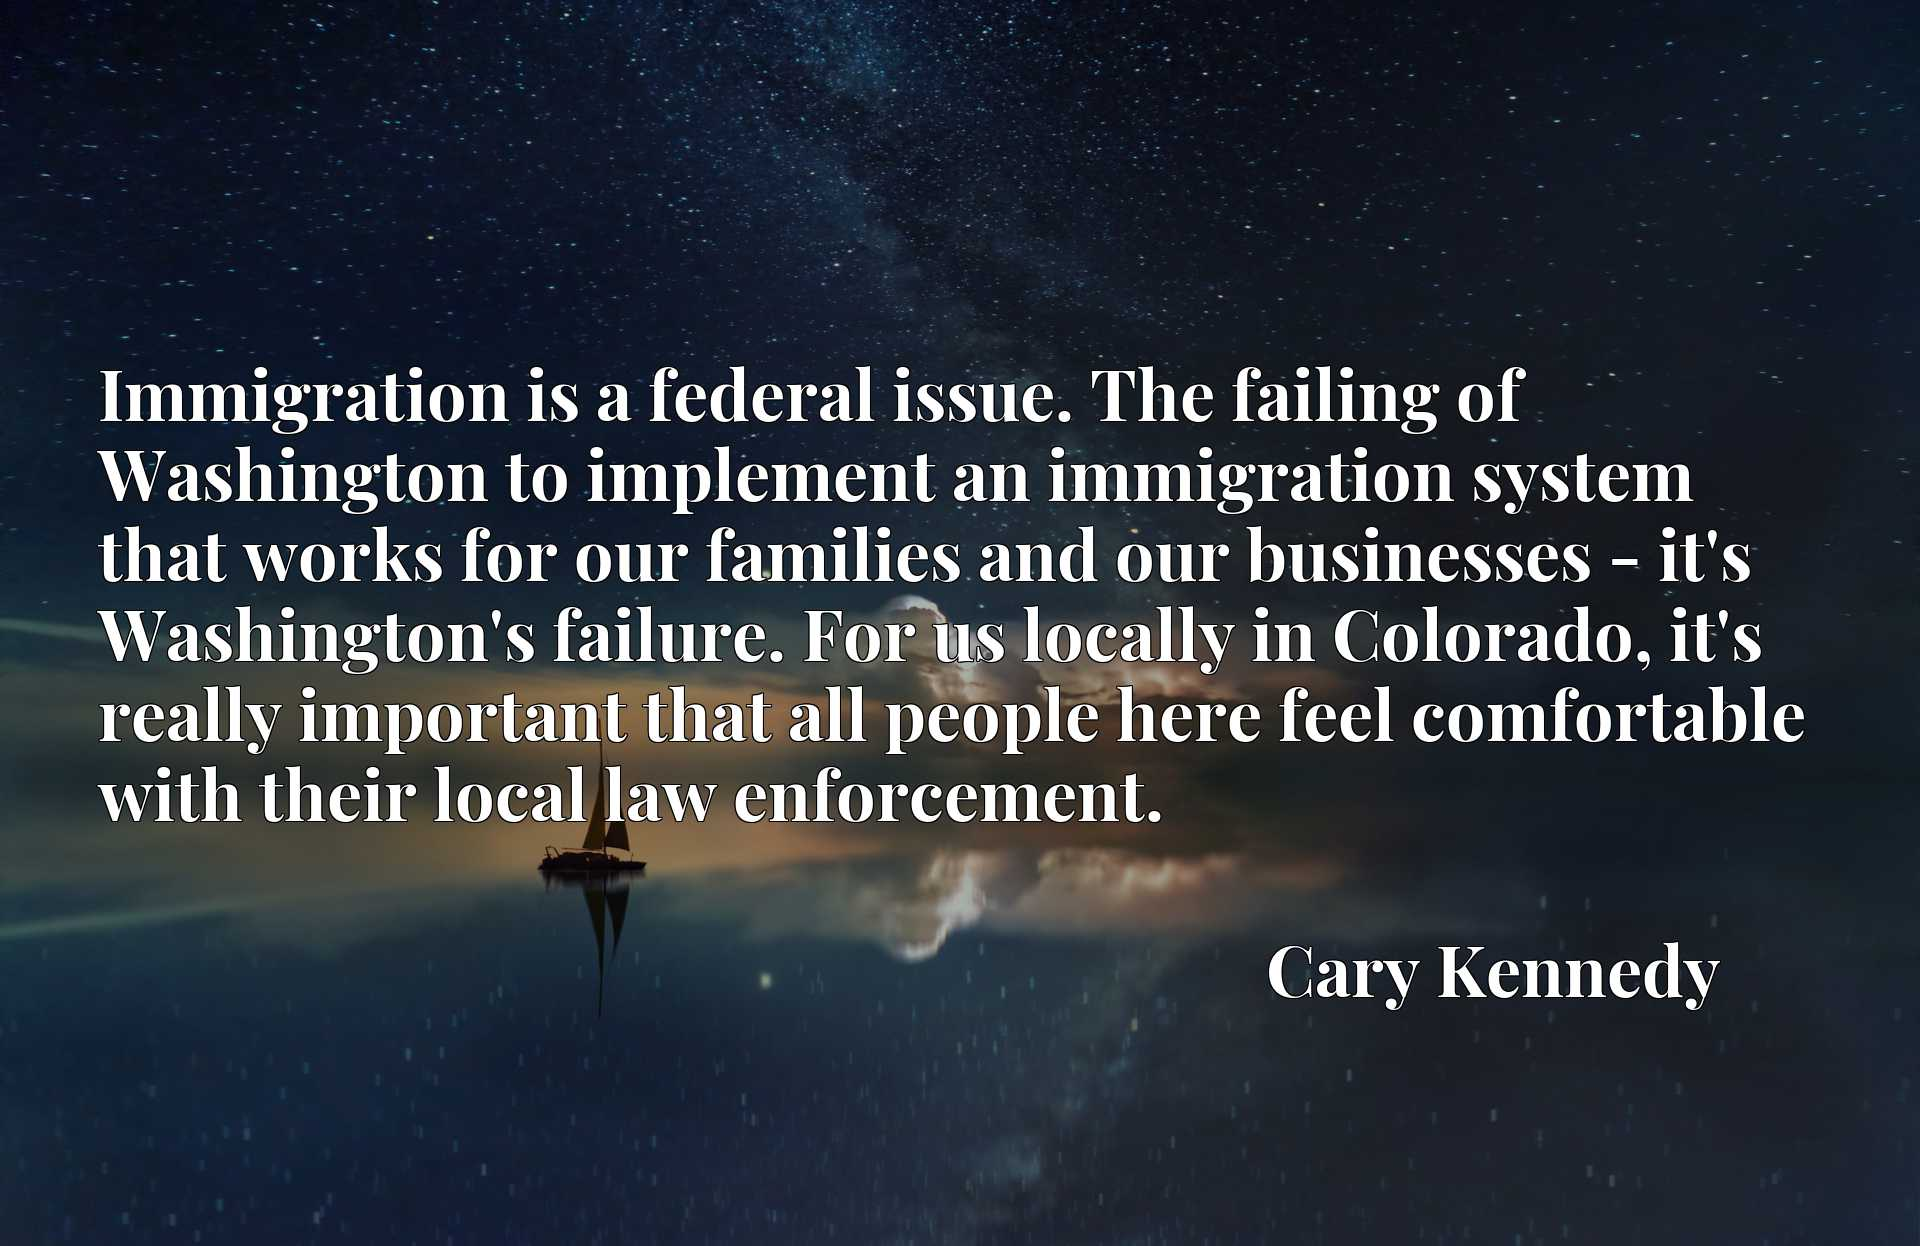 Immigration is a federal issue. The failing of Washington to implement an immigration system that works for our families and our businesses - it's Washington's failure. For us locally in Colorado, it's really important that all people here feel comfortable with their local law enforcement.